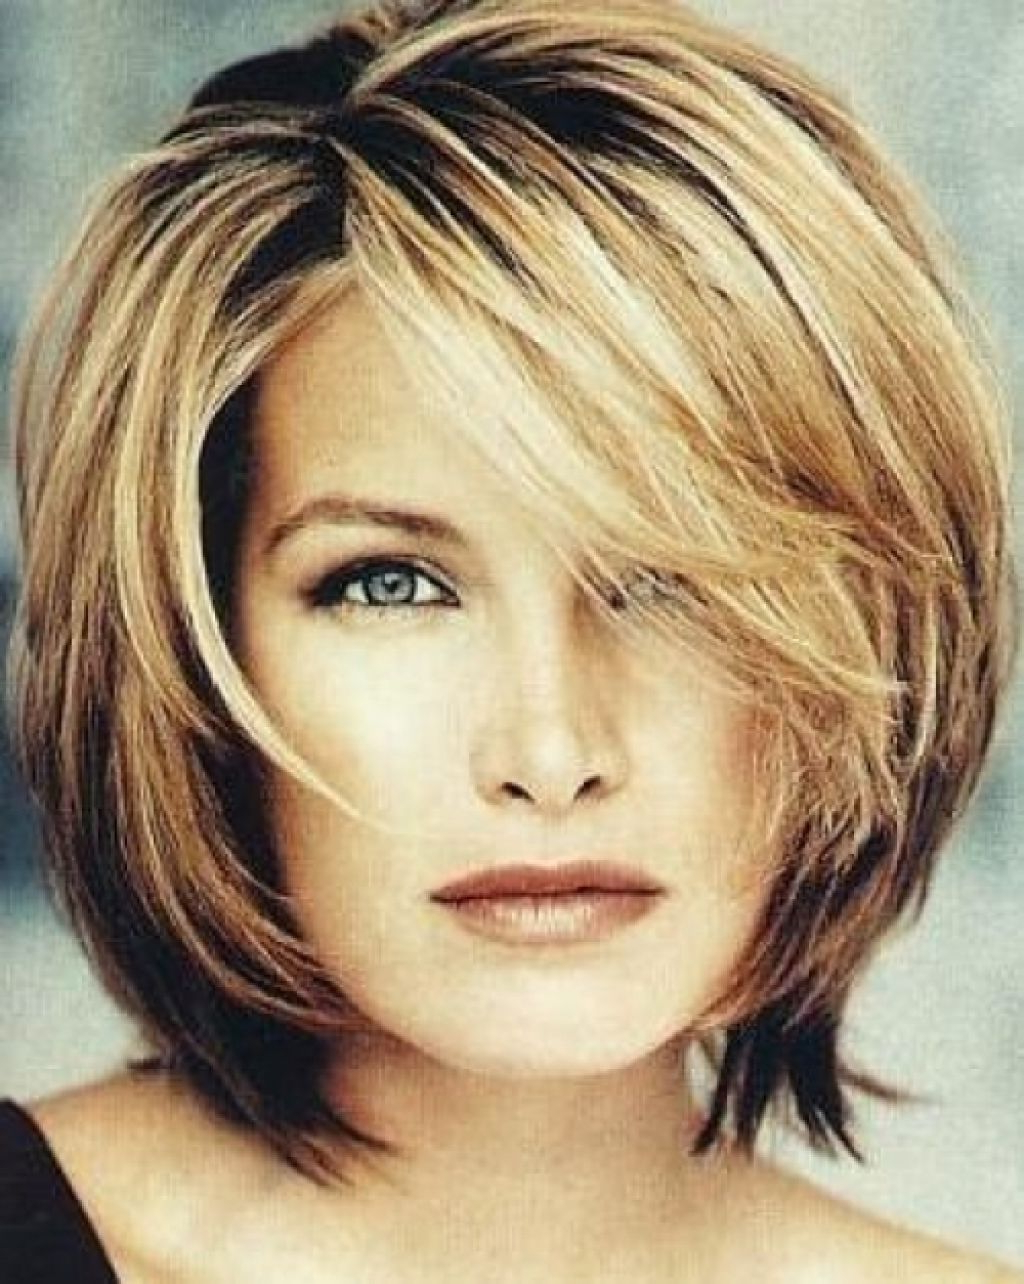 Medium Hairstyles For Women Over 40 : Medium Length Hairstyles For Most Current Medium Haircuts Styles For Women Over (View 13 of 20)